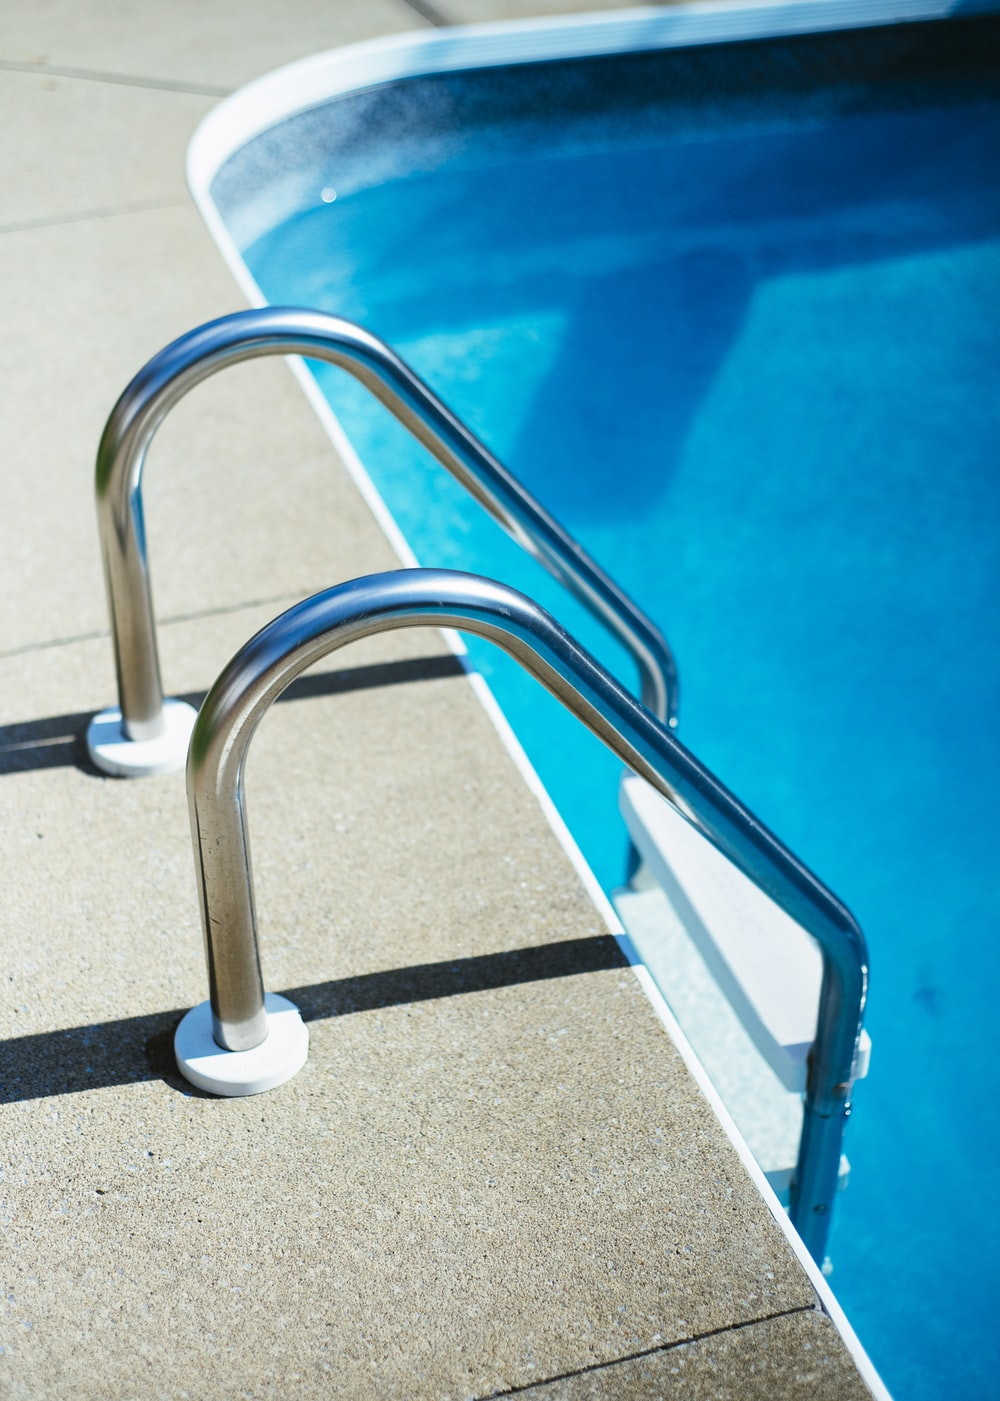 grey and white pool ladder photo – Free Sink faucet Image on Unsplash